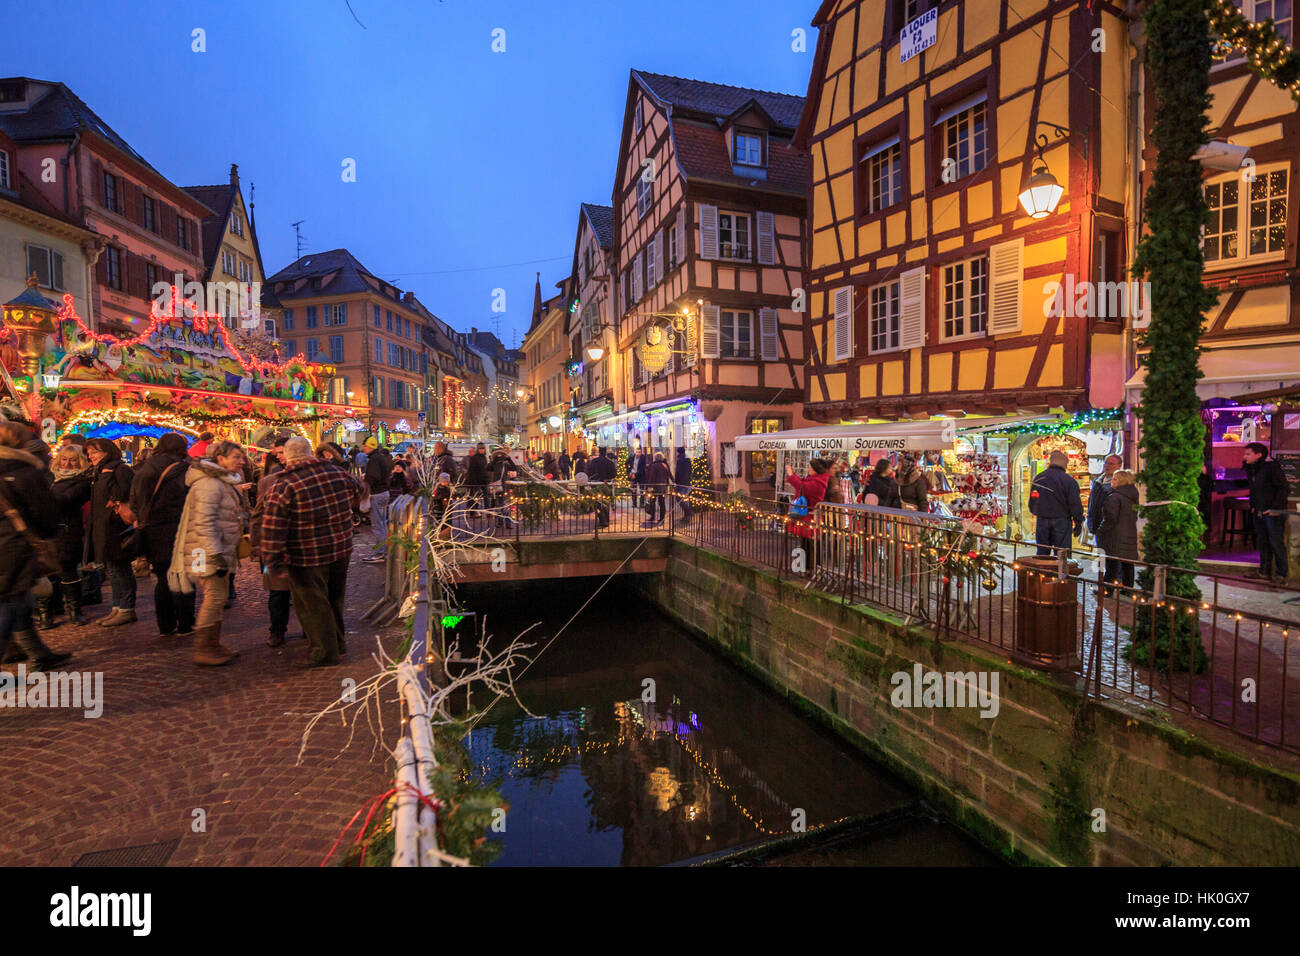 Tourists shopping at the Christmas Markets in the old medieval town of Colmar, Haut-Rhin department, Alsace, France - Stock Image